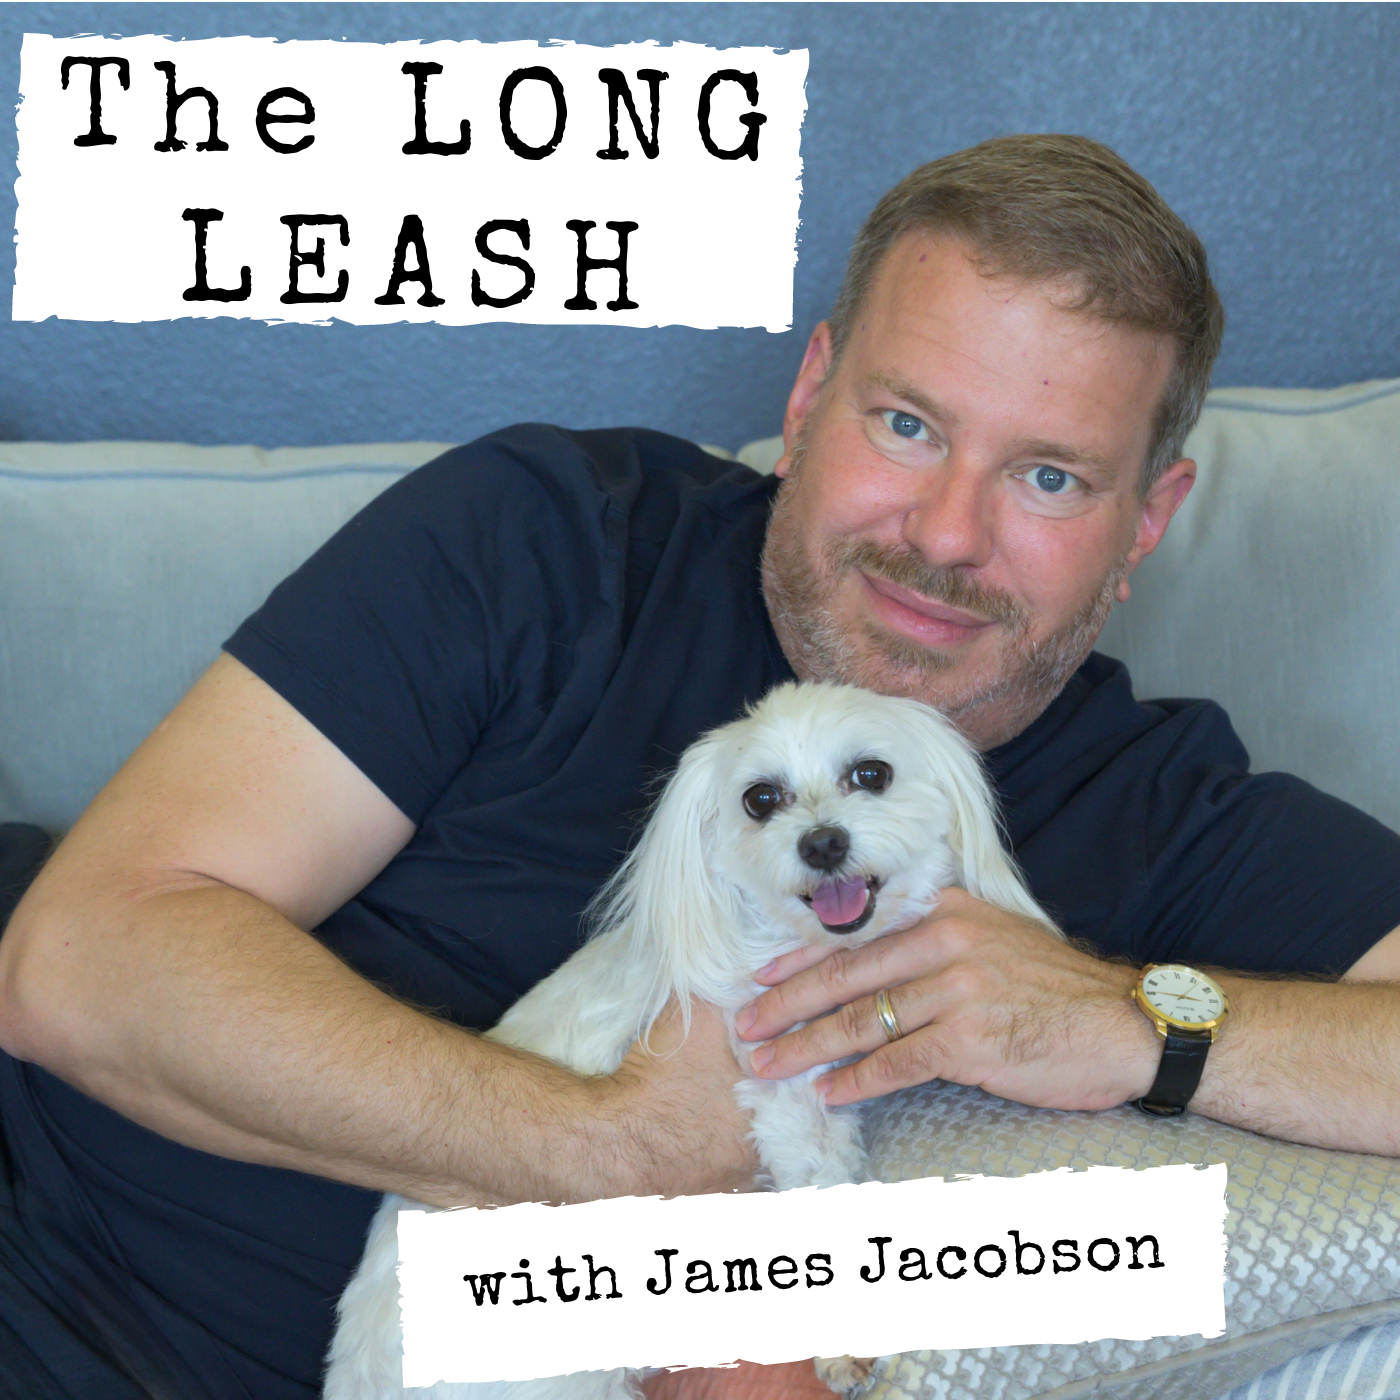 The Long Leash with James Jacobson